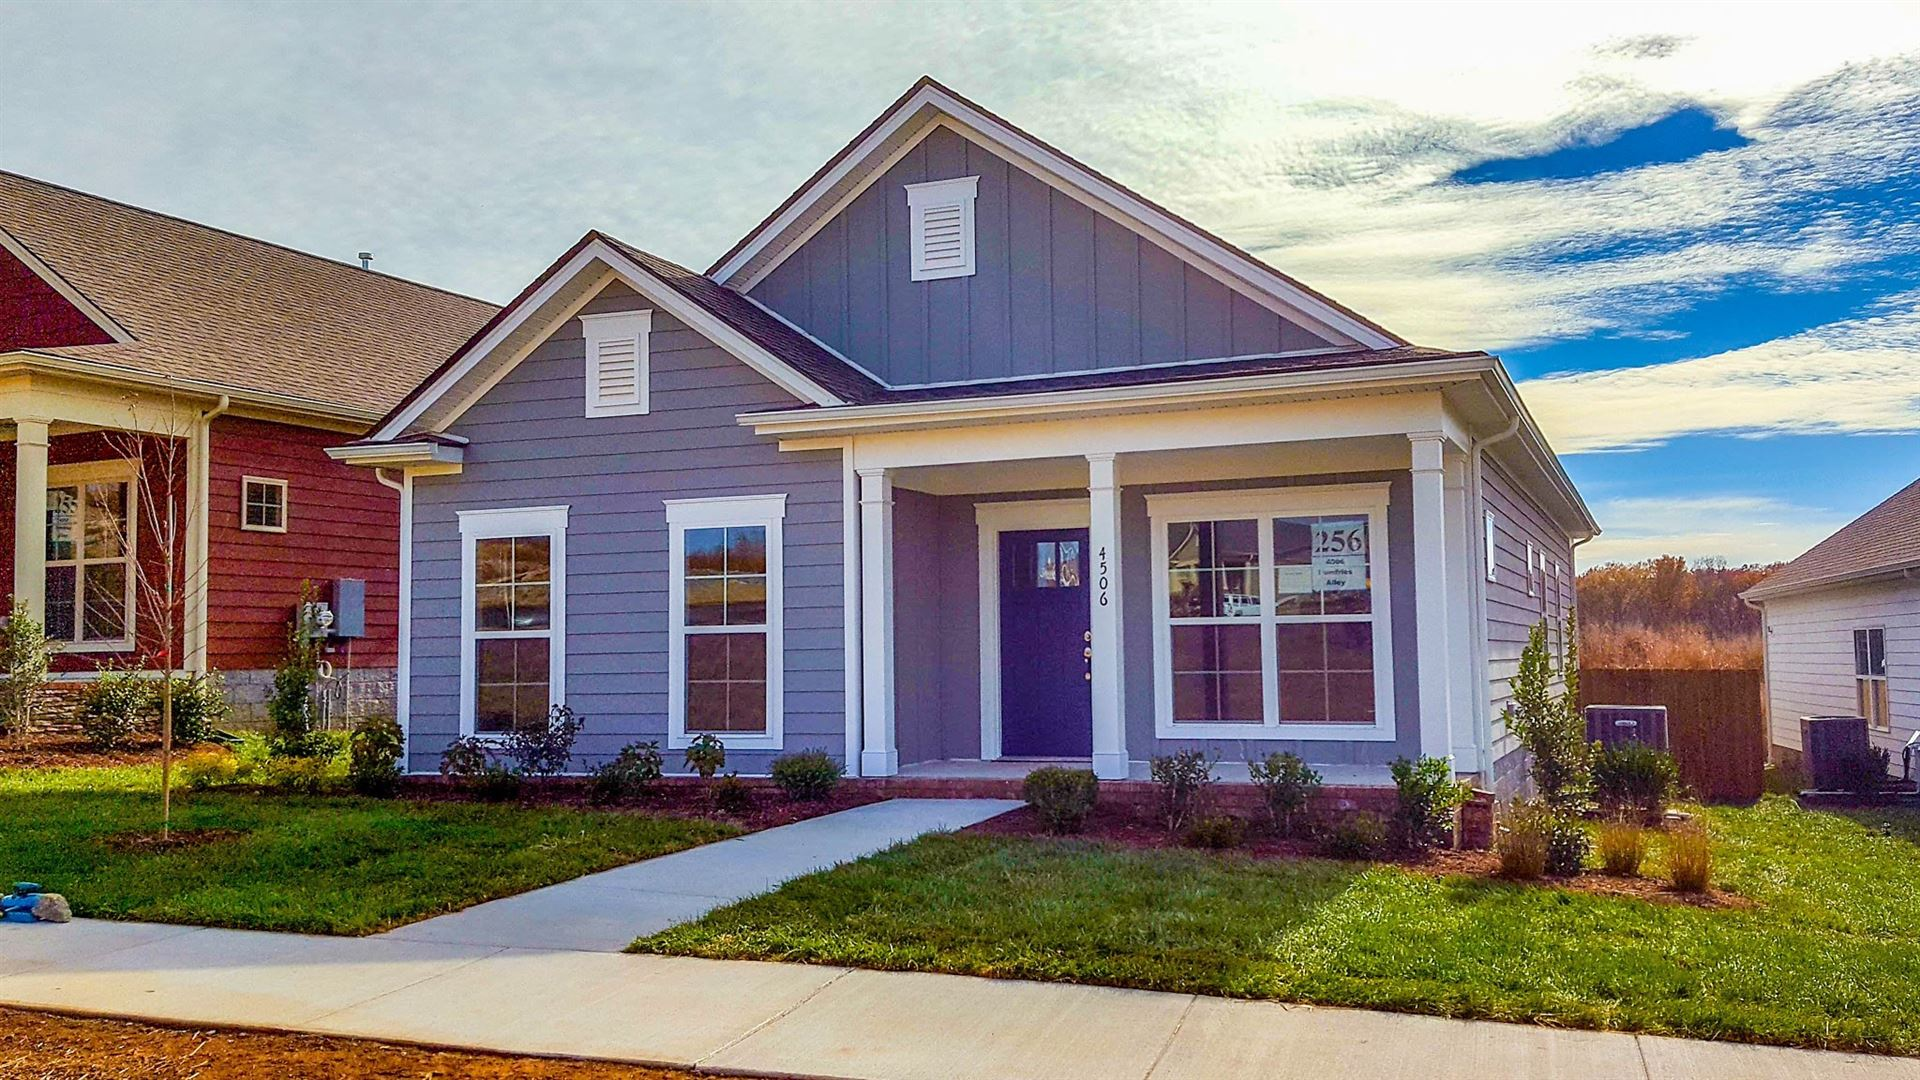 Photo of 741 Goswell Dr, Nolensville, TN 37135 (MLS # 2199200)